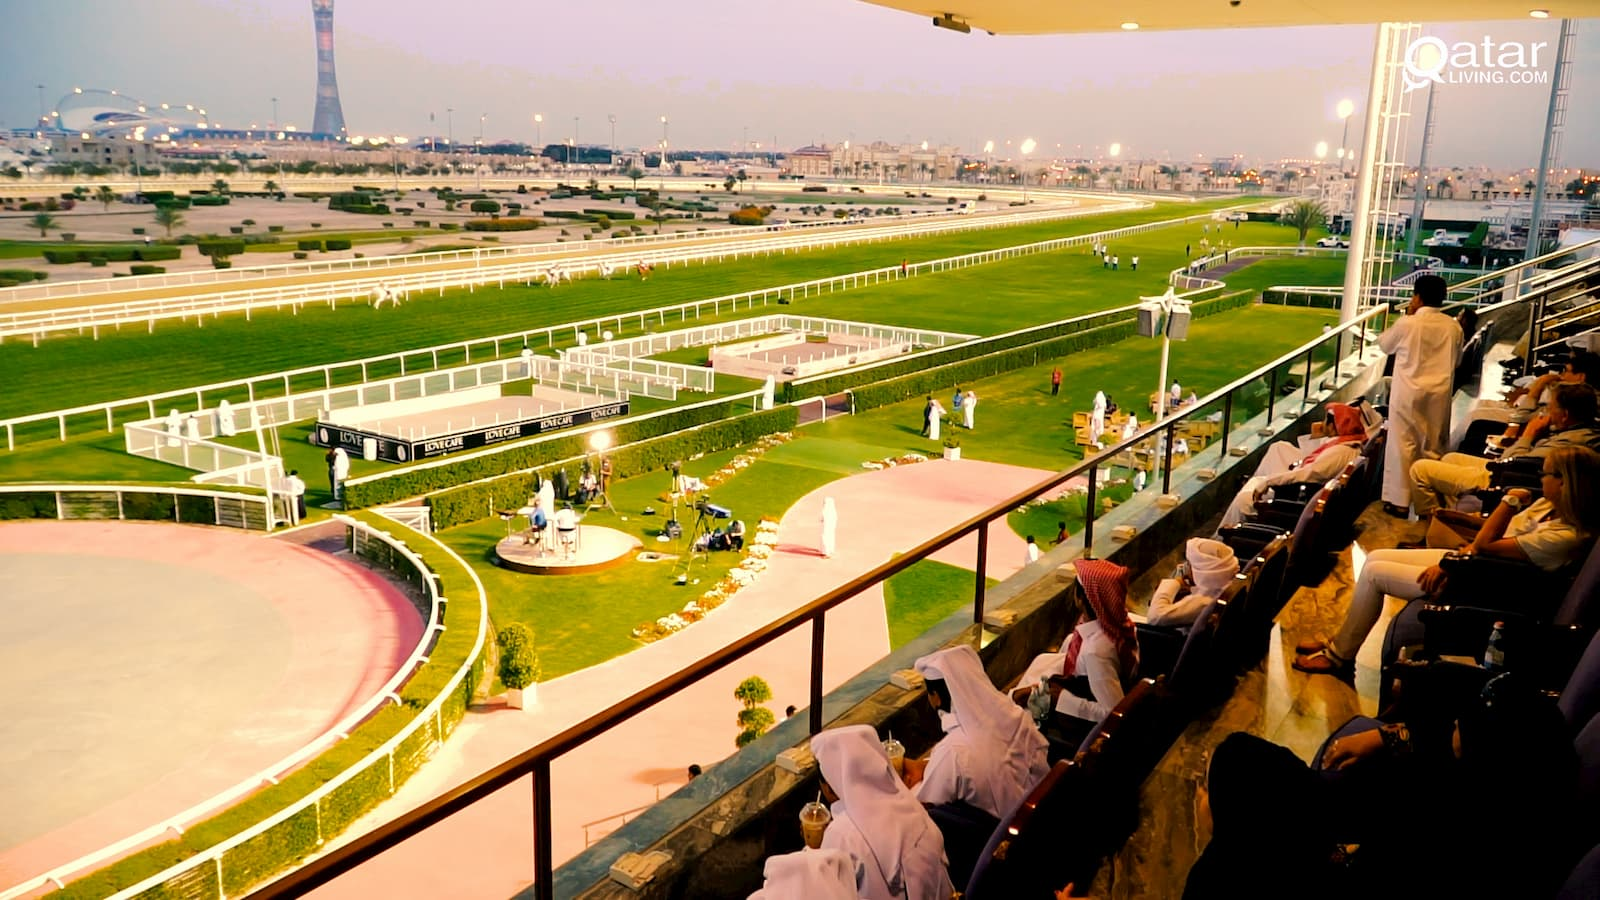 This is an image of Qatar Racing and Equestrian Club.